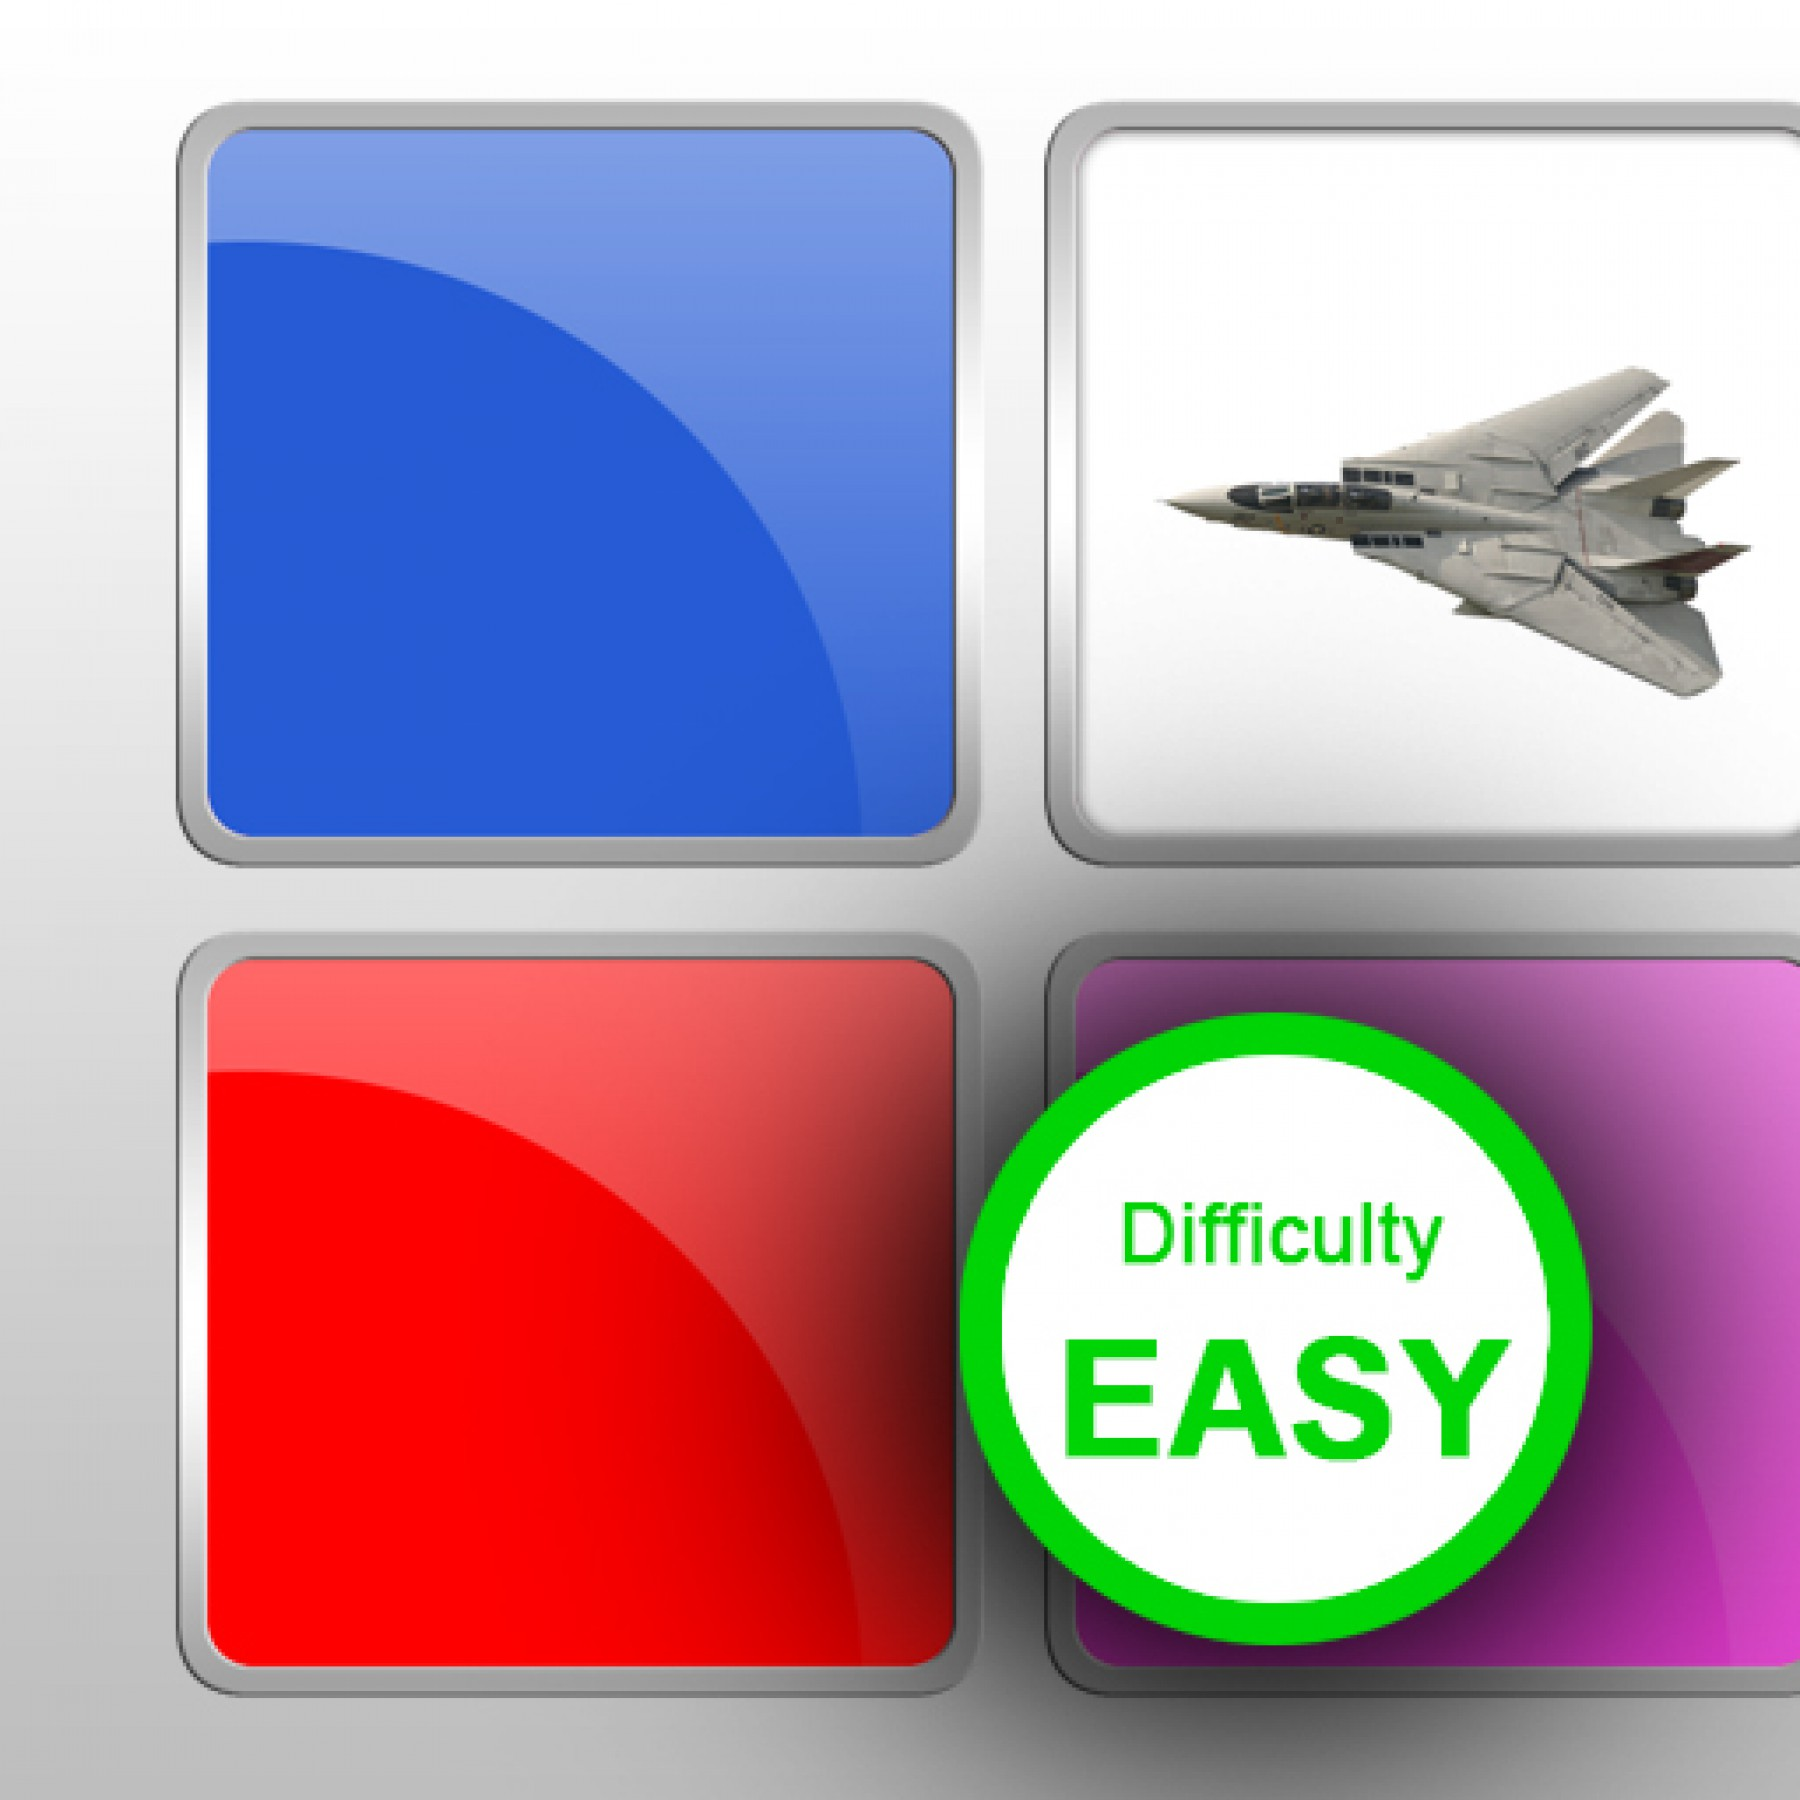 easy-planes-games-kids-adults-transport-main-location1